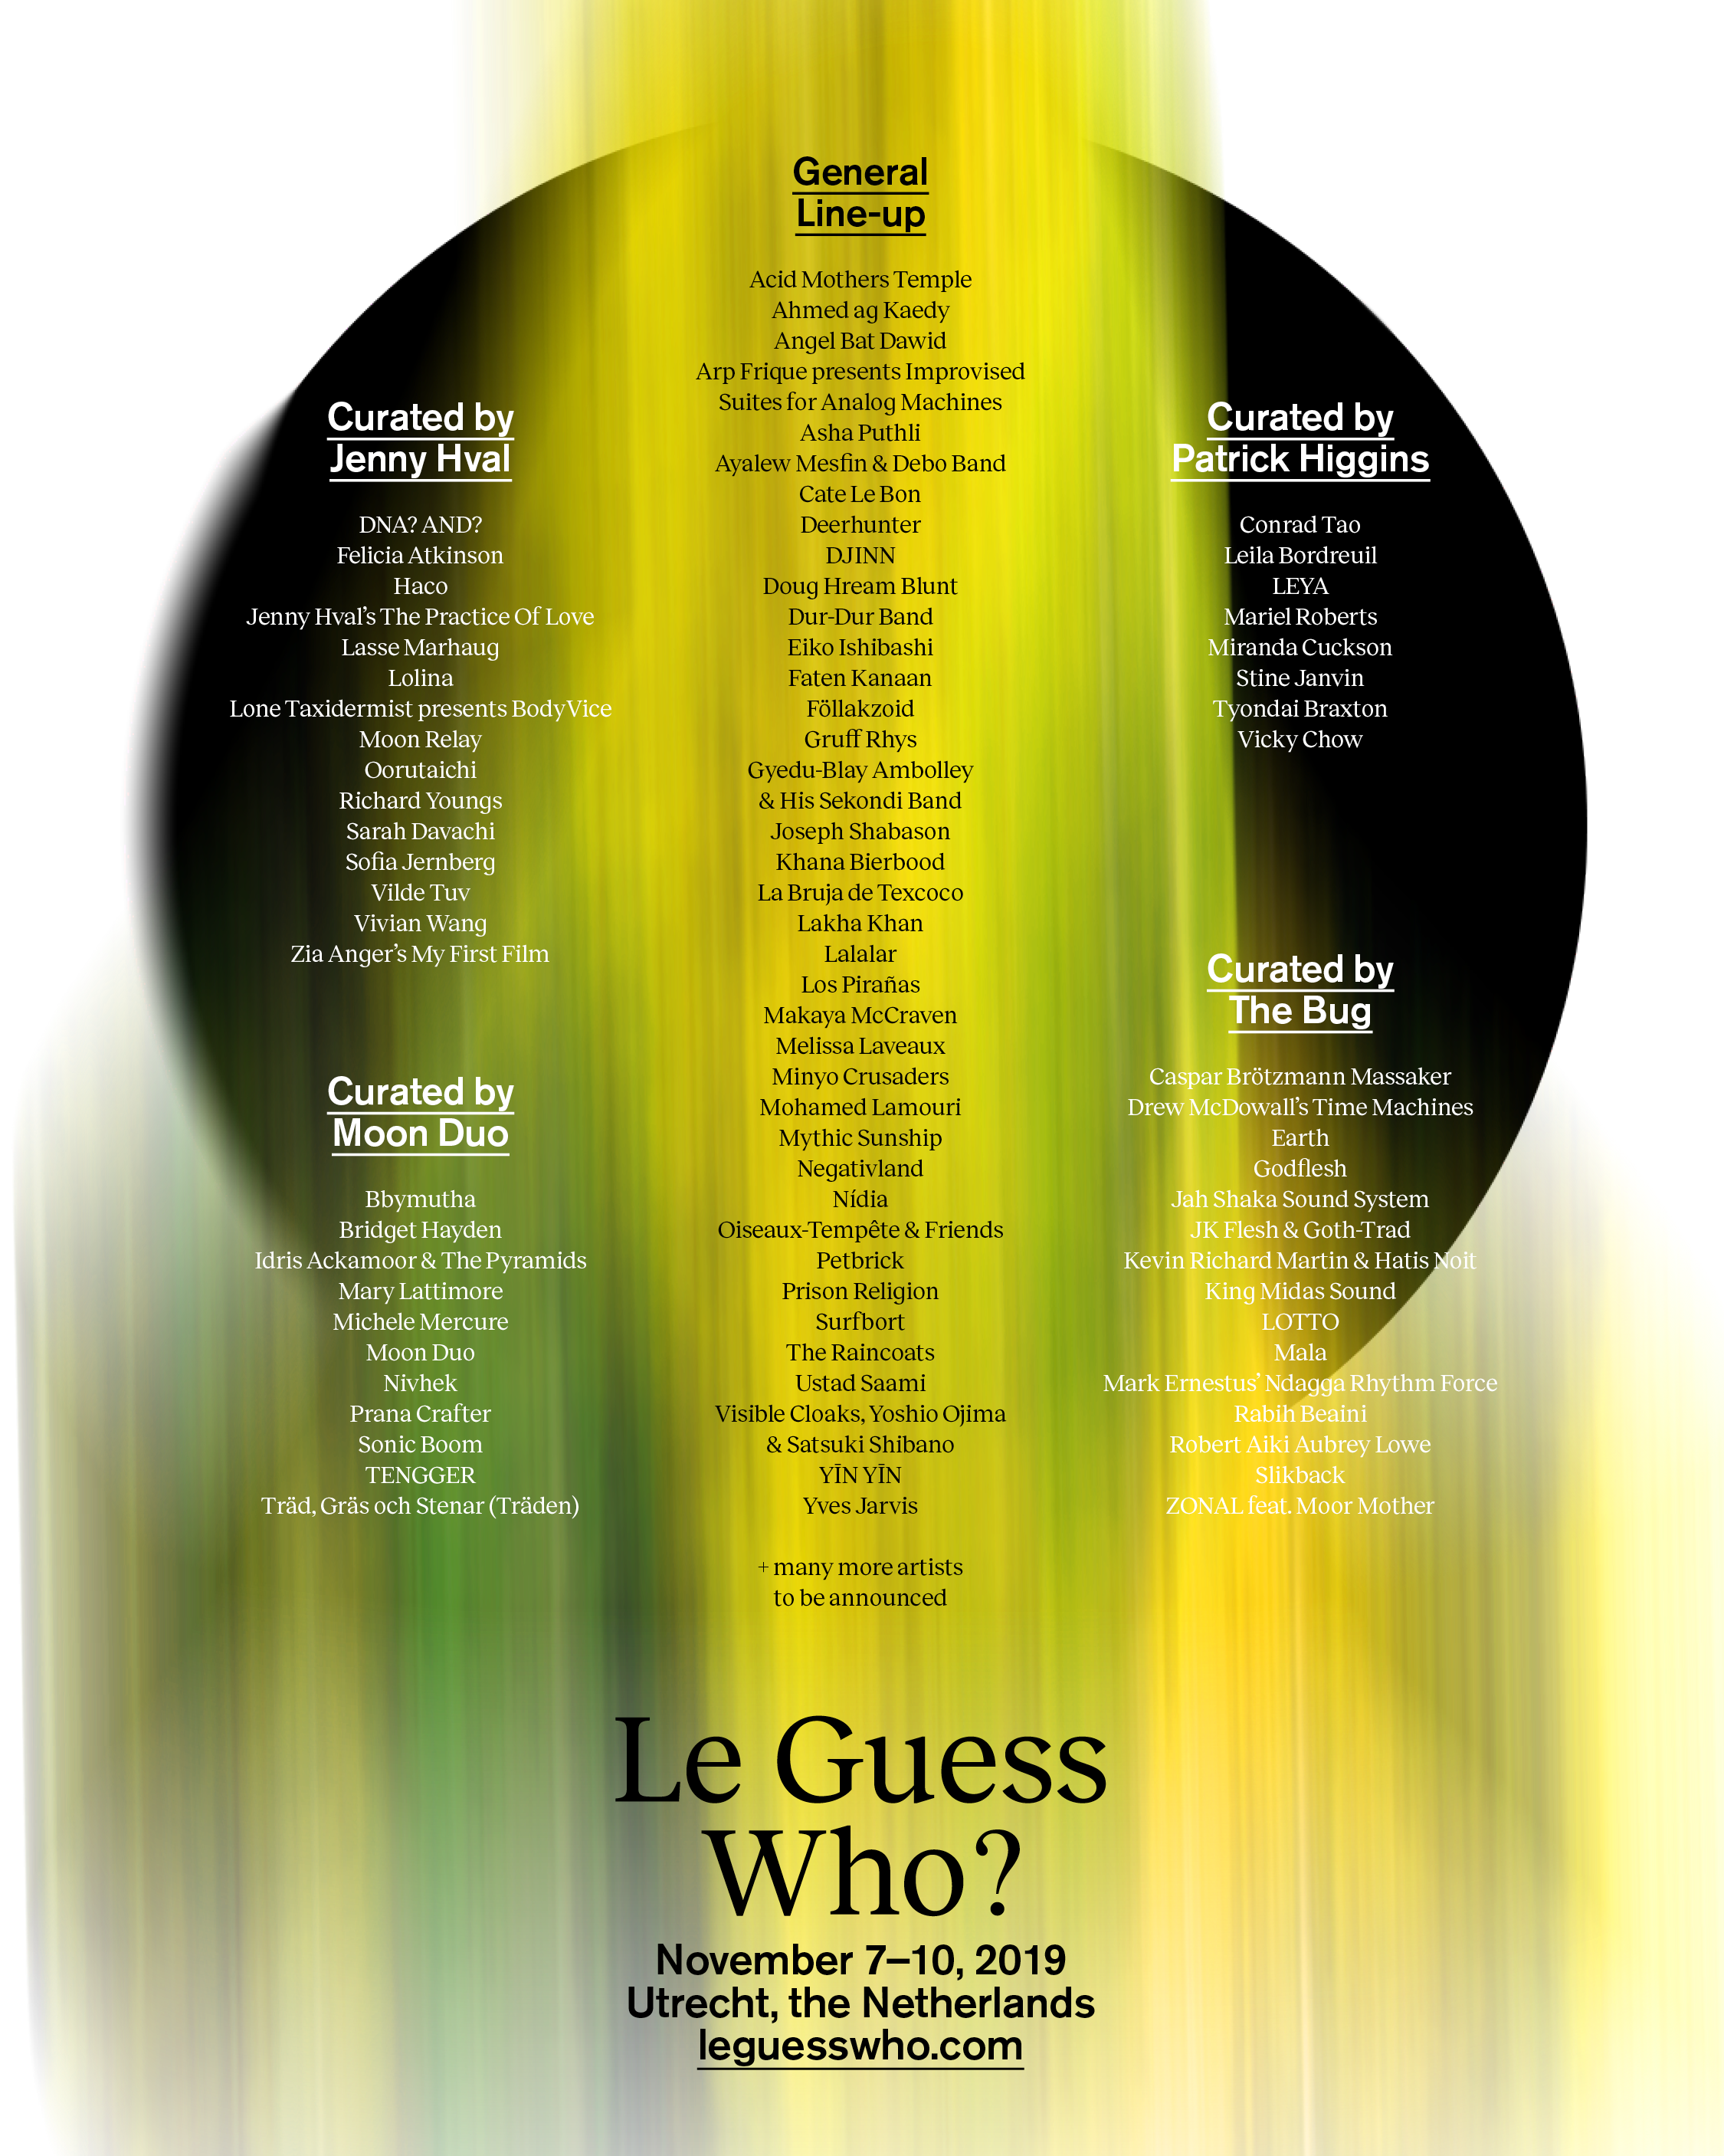 Revealing the initial line-up for Le Guess Who? 2019